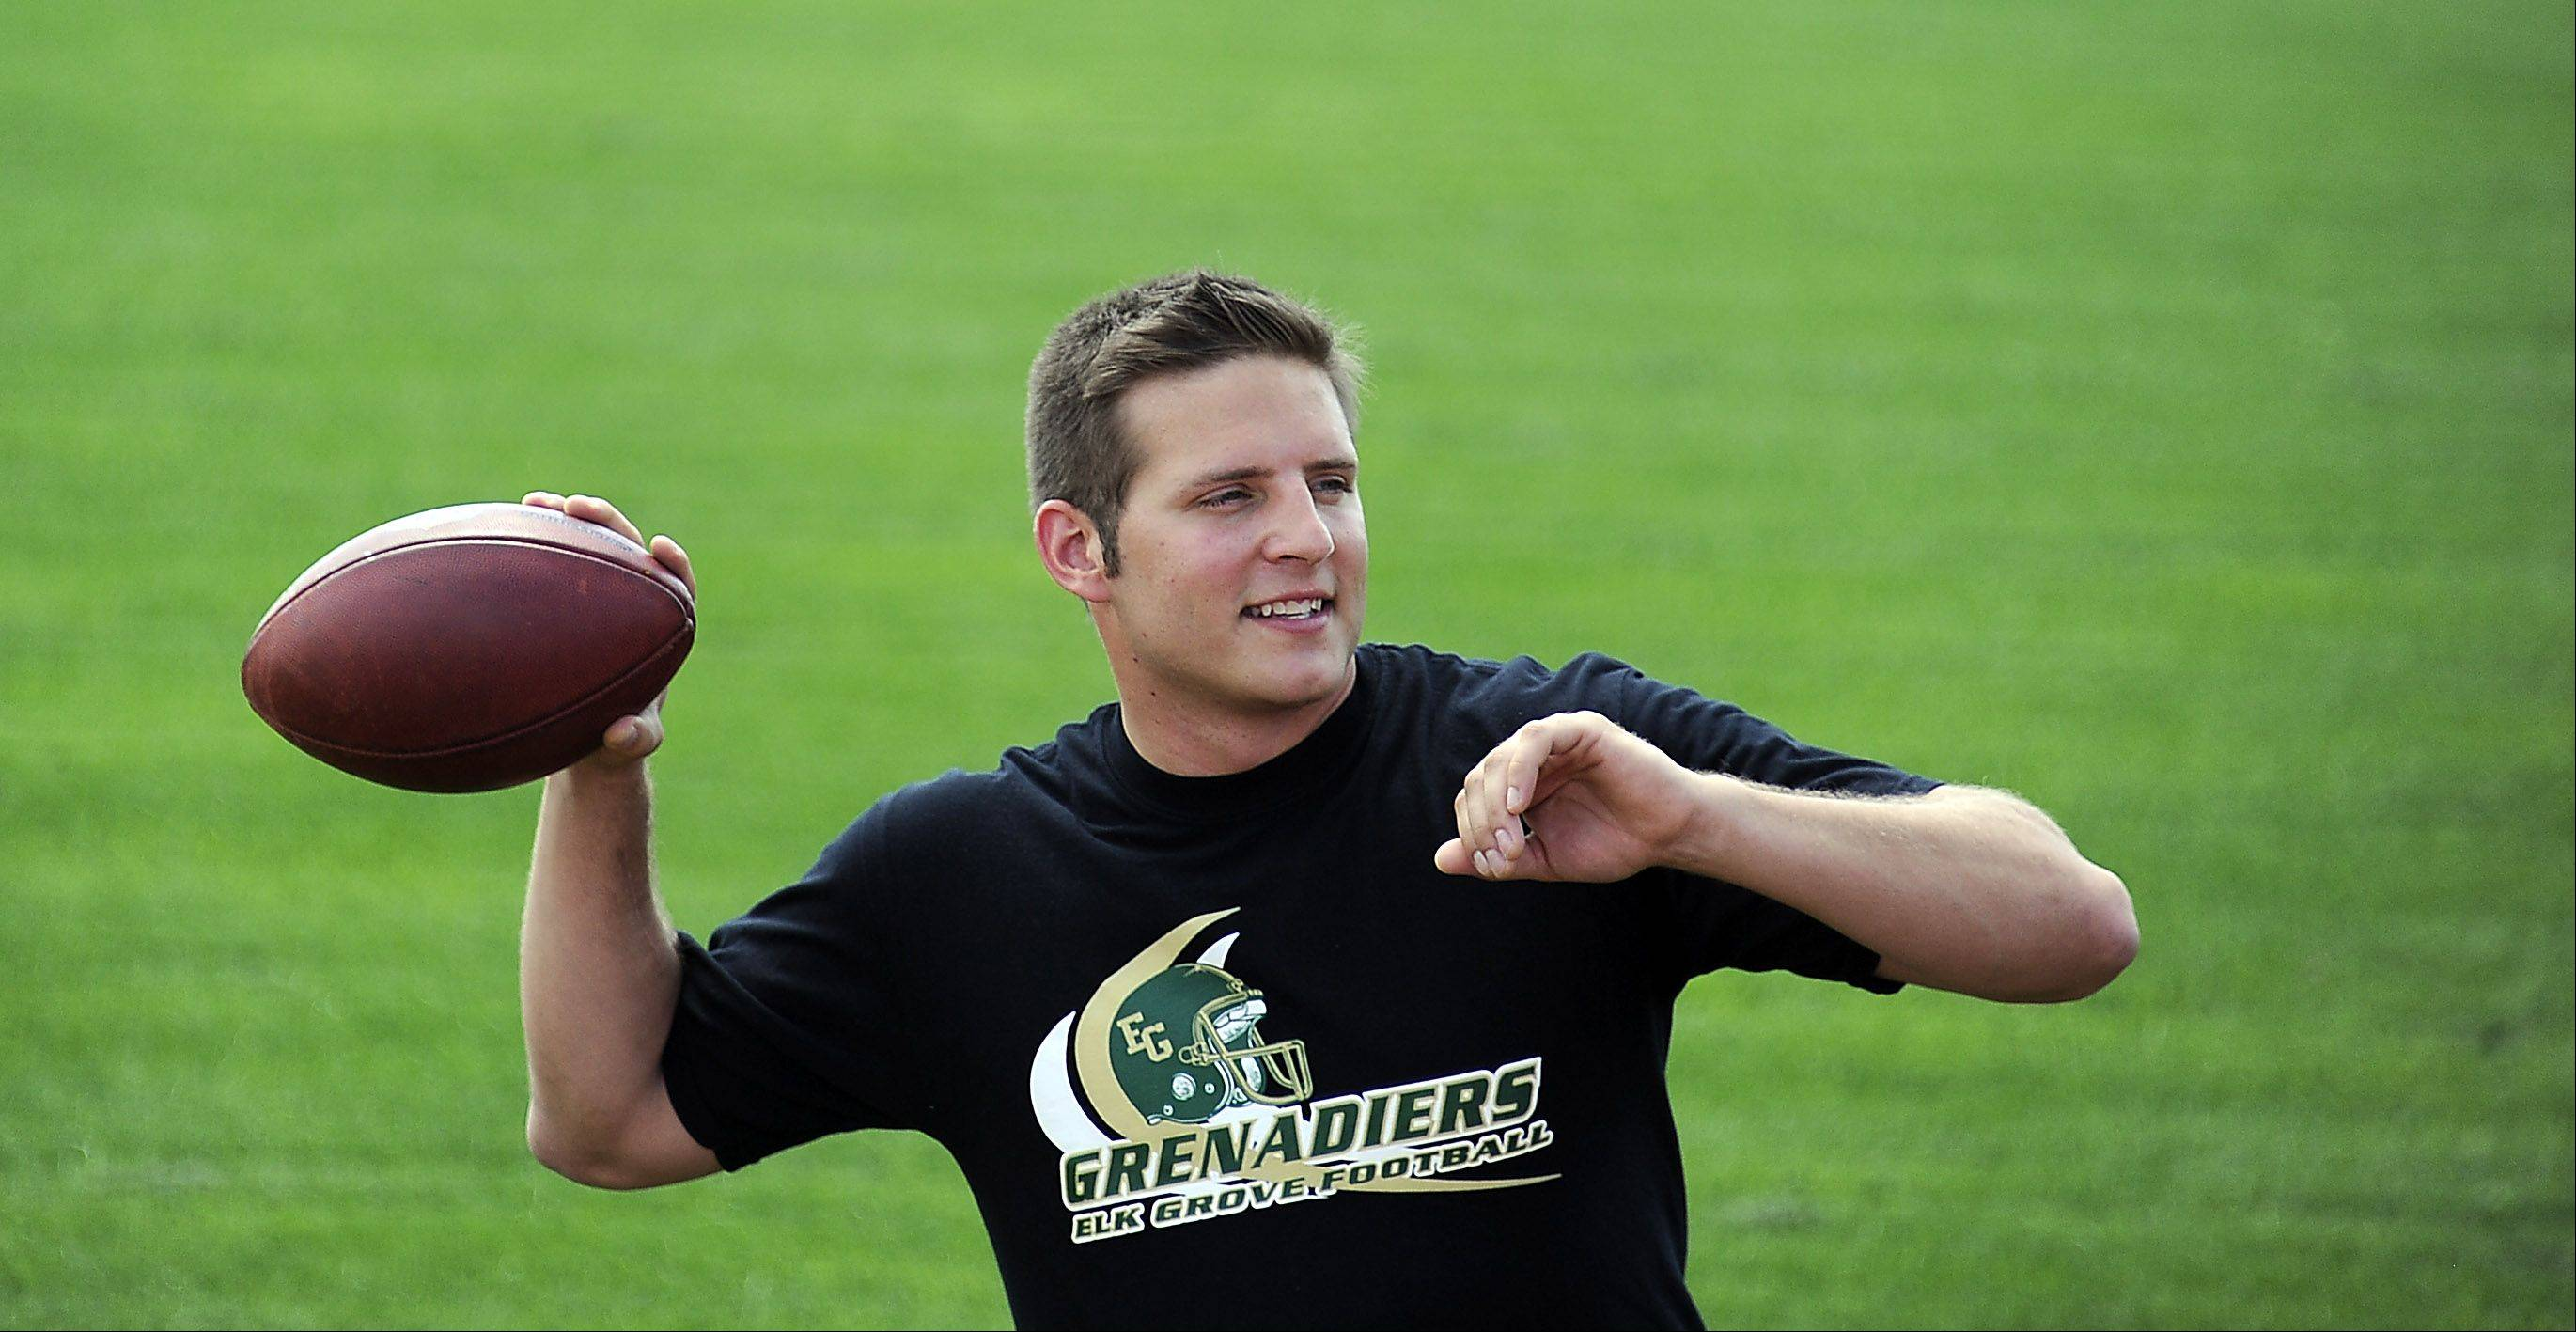 Elk Grove High School graduate Tom Kudyba, 28, a former quarterback for the school's football team, said his goal is to one day be the head coach for the school. But for now, he is going to Brazil to be the head coach for a professional football team there.